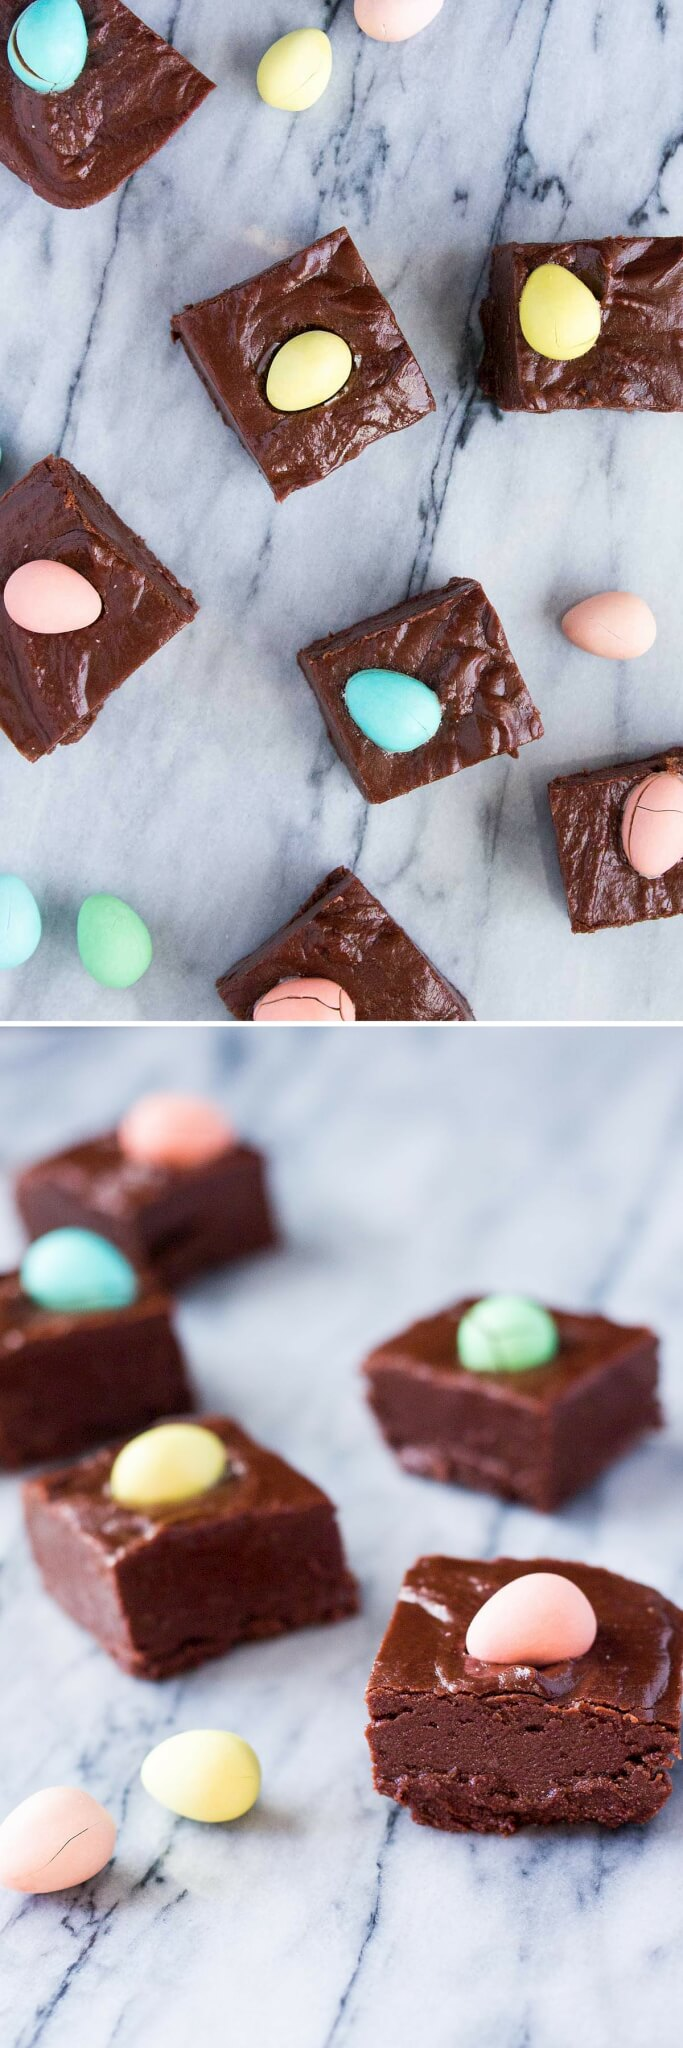 Creamy, smooth Easter Chocolate Fudge that's super easy to make & so pretty. You'll love that this recipe using marshmallow cream only takes 10 minutes!